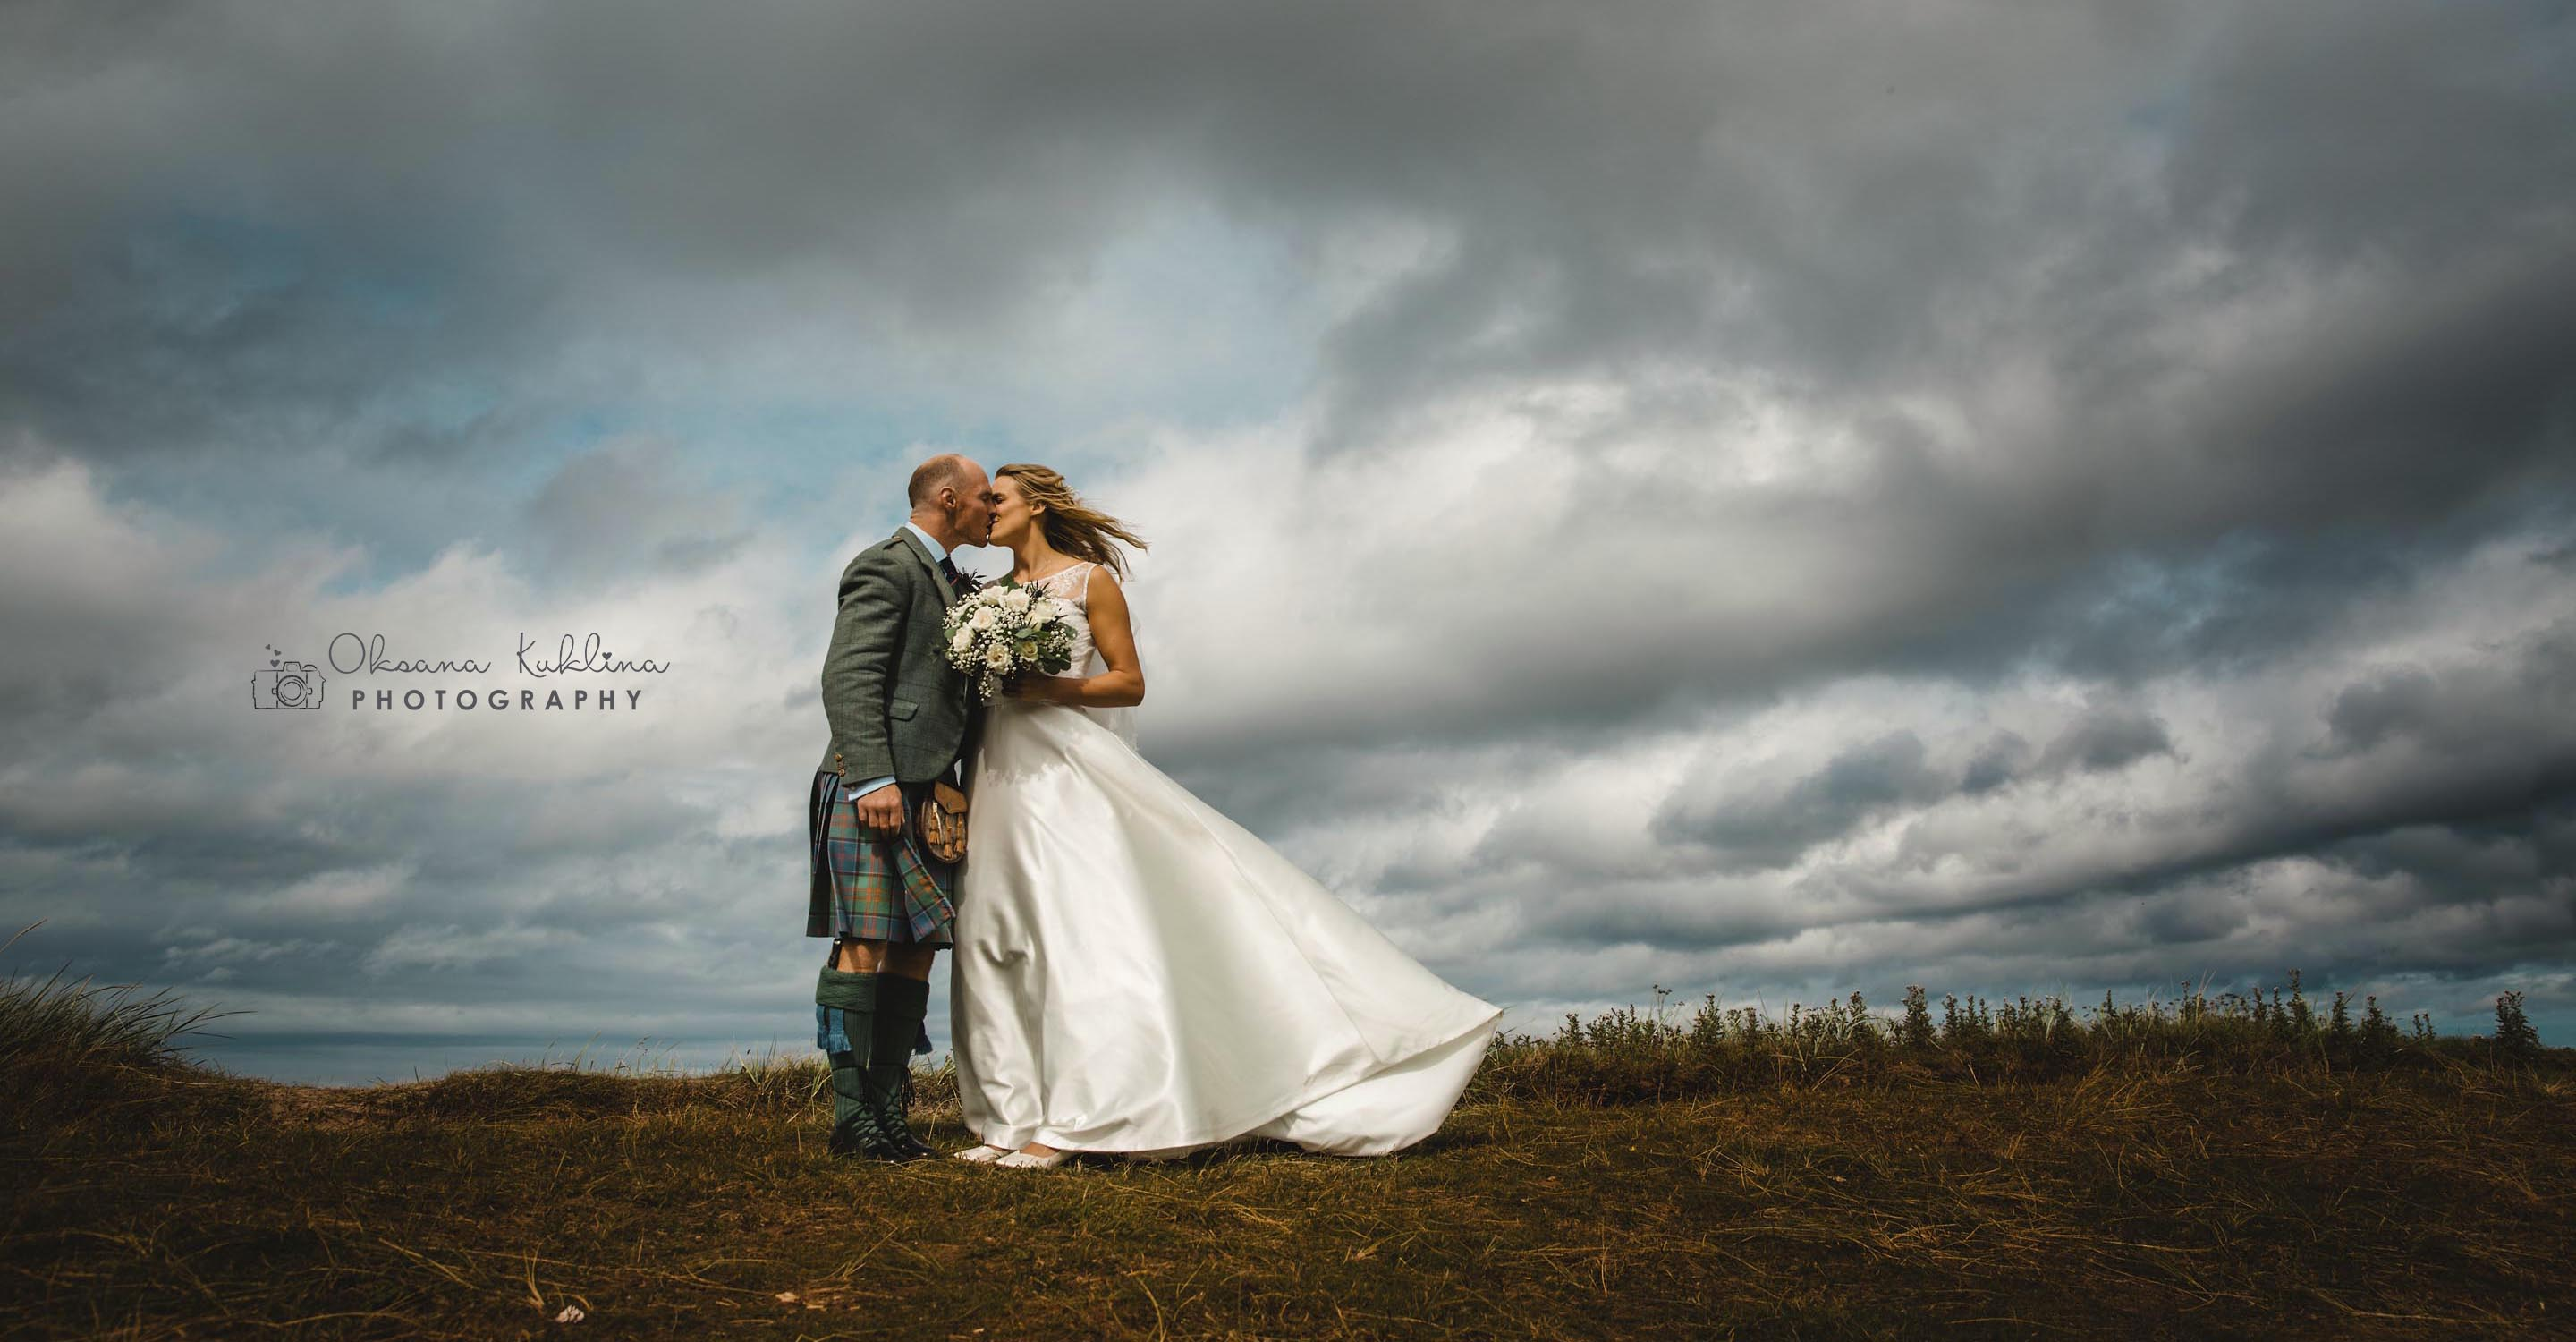 Broxmouth Park Wedding Photographer  - Luxury Scotland Wedding Photography - Wedding at Broxmouth Park in Dunbar